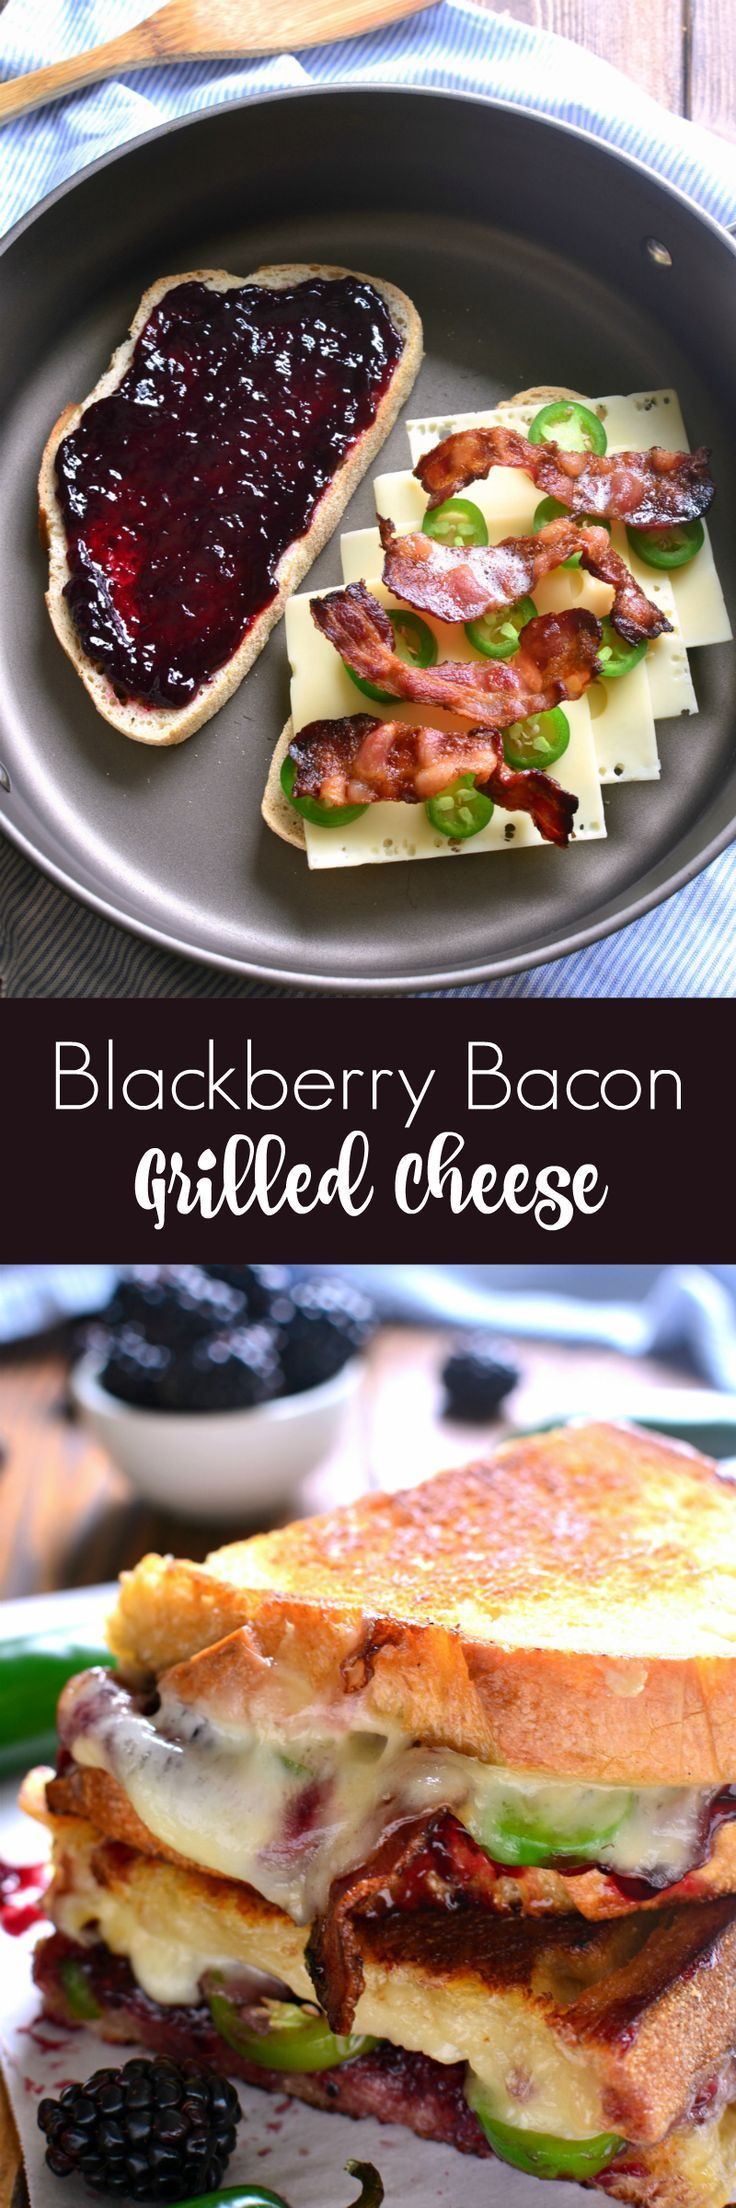 This Blackberry Bacon Grilled Cheese is the perfect combination of savory and sweet! Made with Swiss cheese, blackberry jam, fresh jalapeños, and crispy bacon, it's a must try for ALL sandwich lovers!